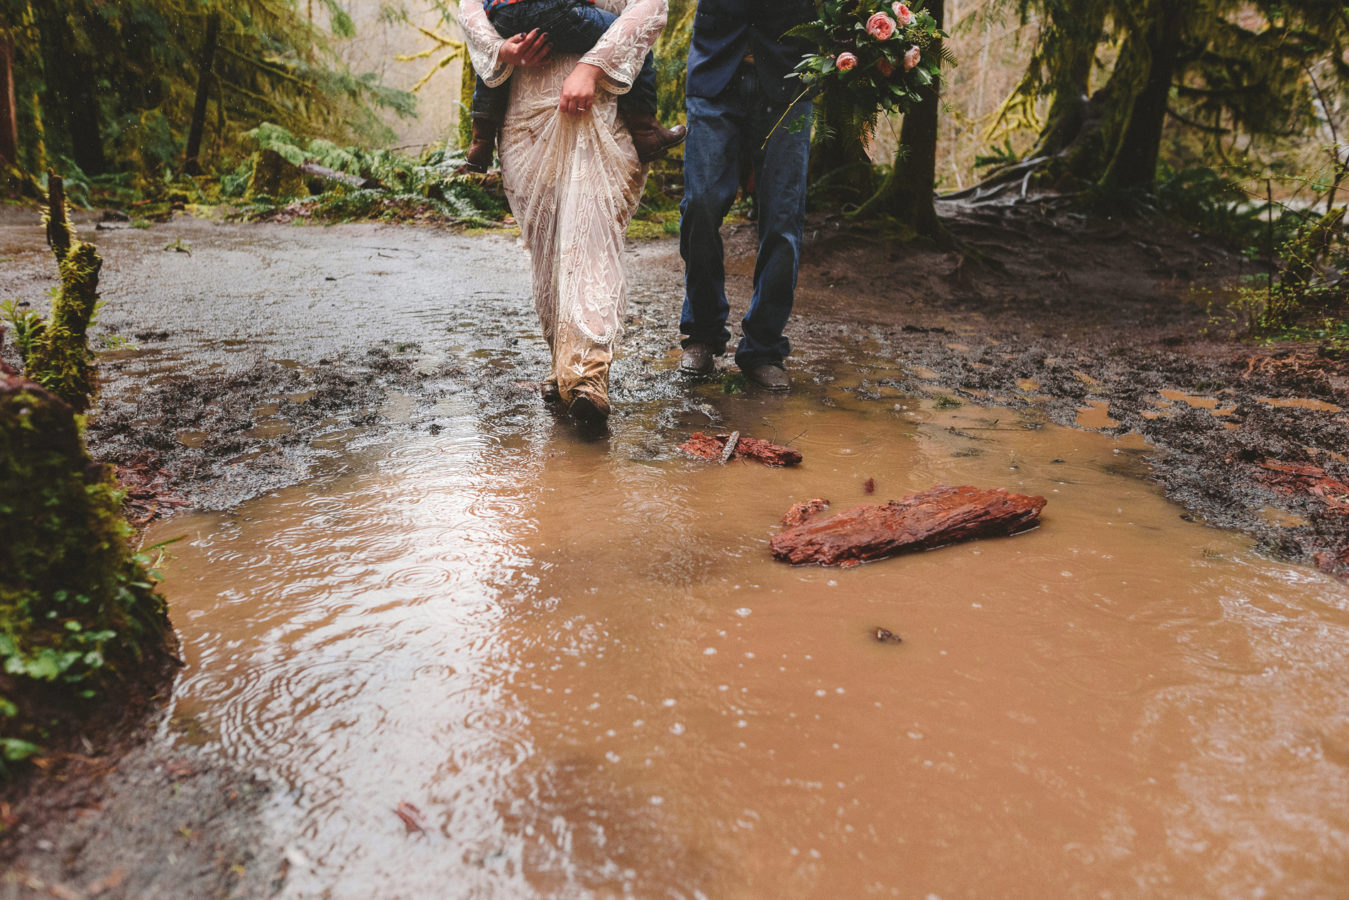 bride and groom walking together into a big mud puddle on a path in the forest on their wedding day while she holds their young child in her arms